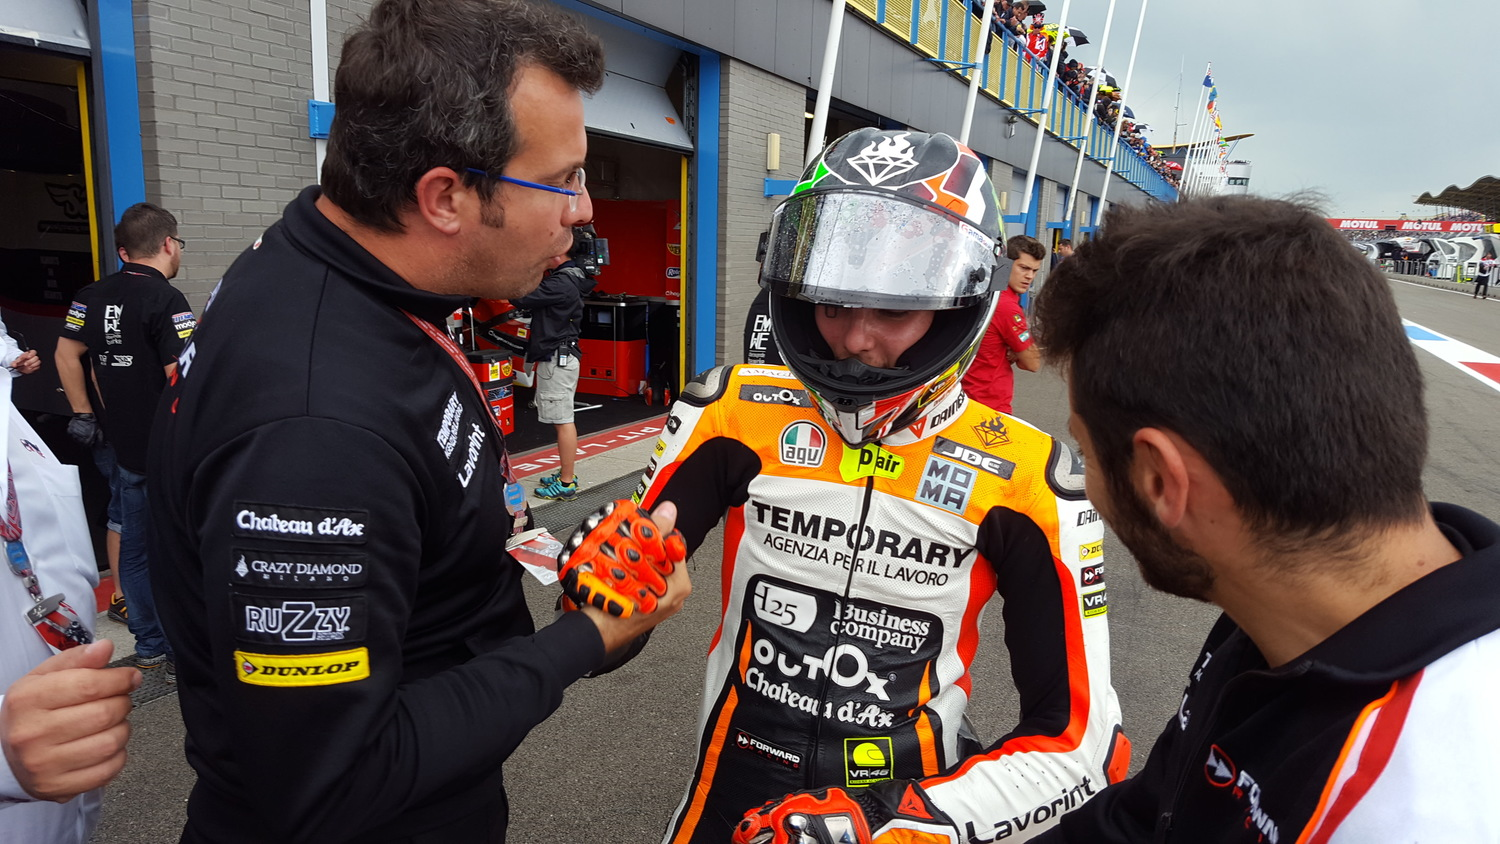 Baldassarri grabs fifth place at Assen